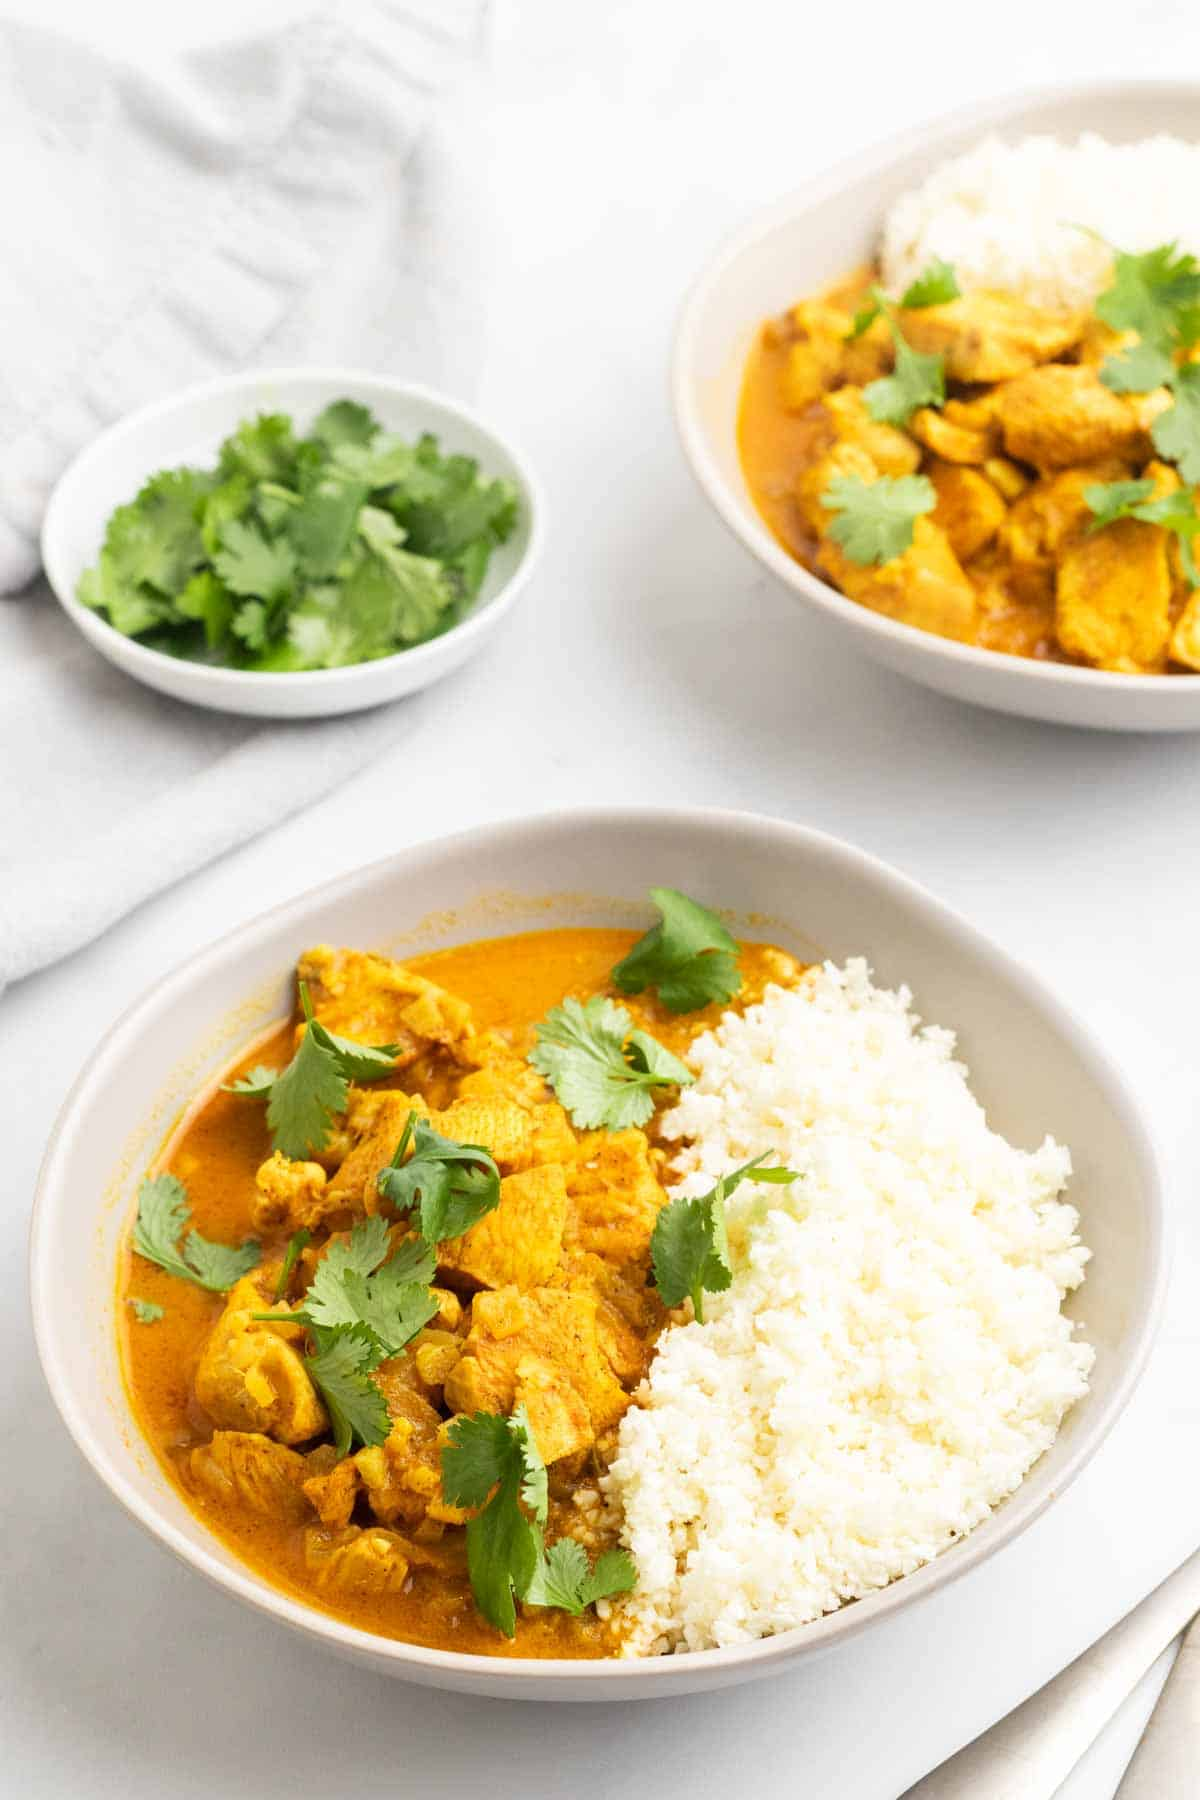 Two bowls of chicken curry with cauliflower rice next to a ramekin of cilantro for garnishing